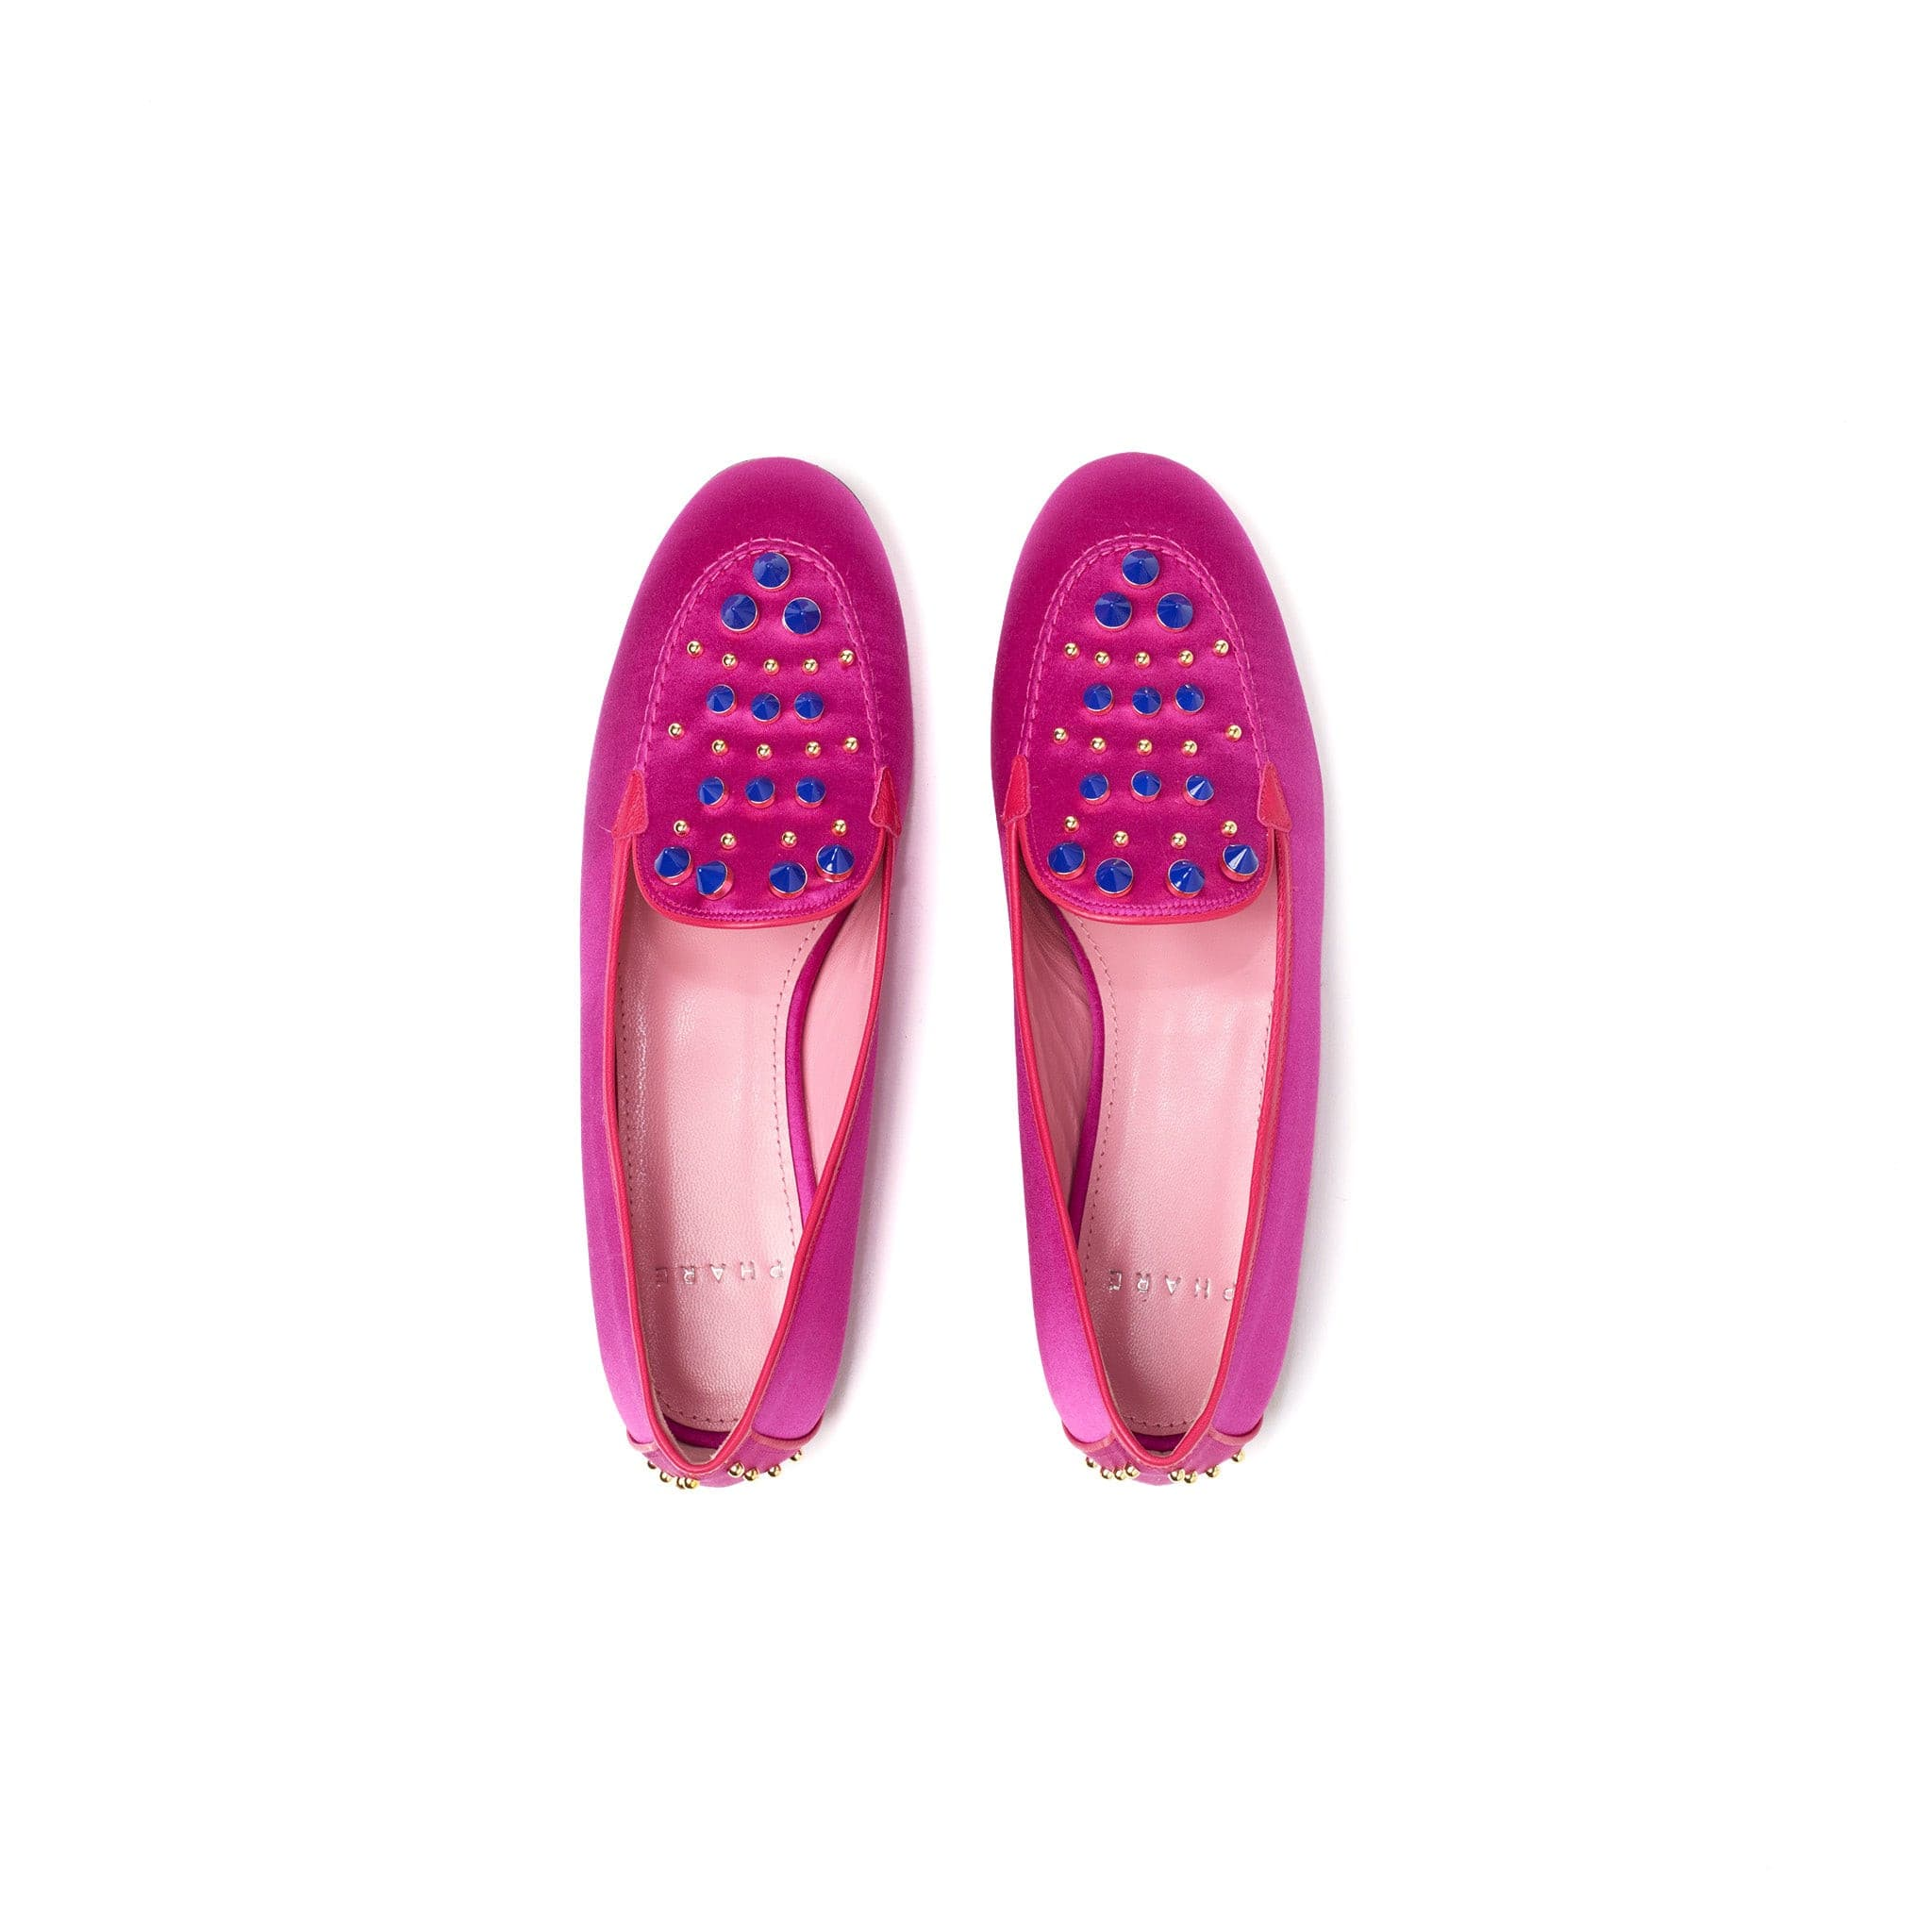 Phare Studded loafer in magenta silk satin with blue and gold studs back view